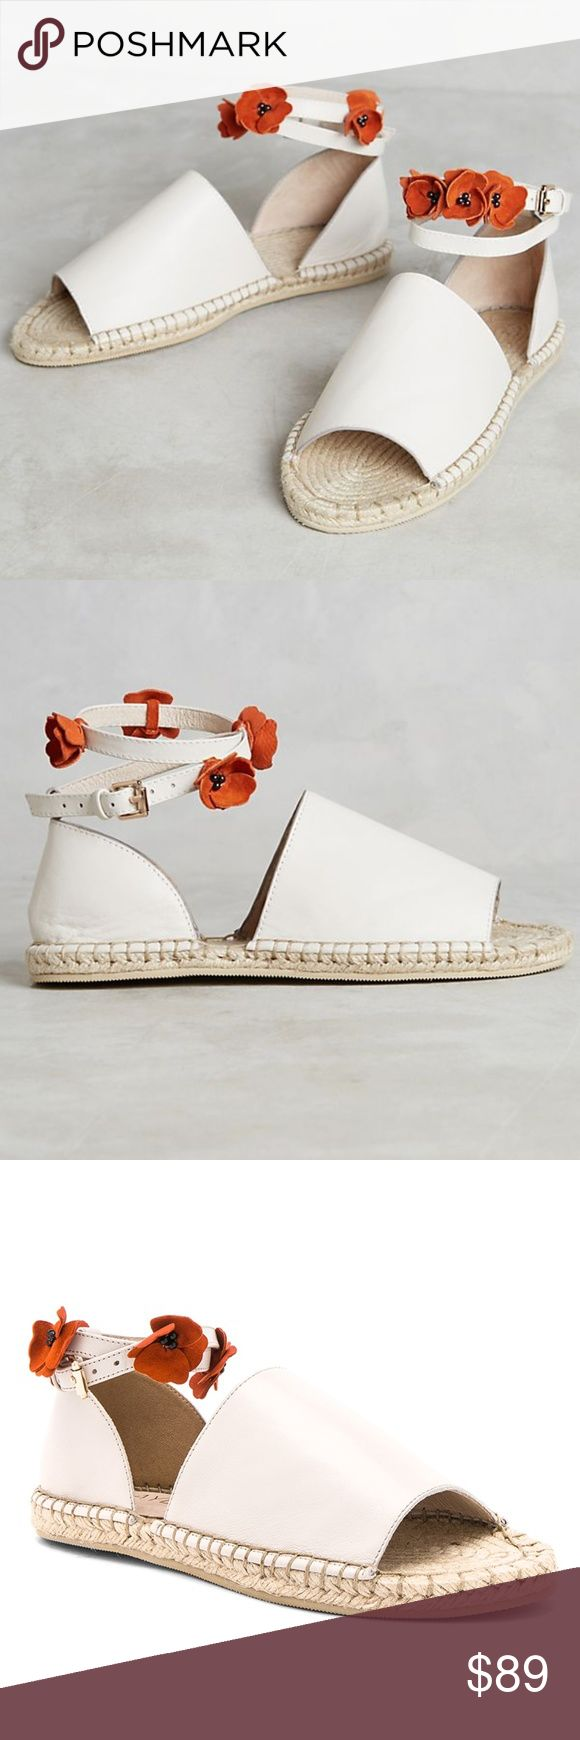 NWT ANTHROPOLOGIE Raye Daphne Floral Espadrilles Brand new with tags NWT ANTHROPOLOGIE Raye Daphne Floral Espadrilles.  Fits true to size Canvas upper Suede flower embellishments Leather insole Raffia sole Ankle Tie Photo credit to Anthropologie & Revolve Anthropologie Shoes Espadrilles